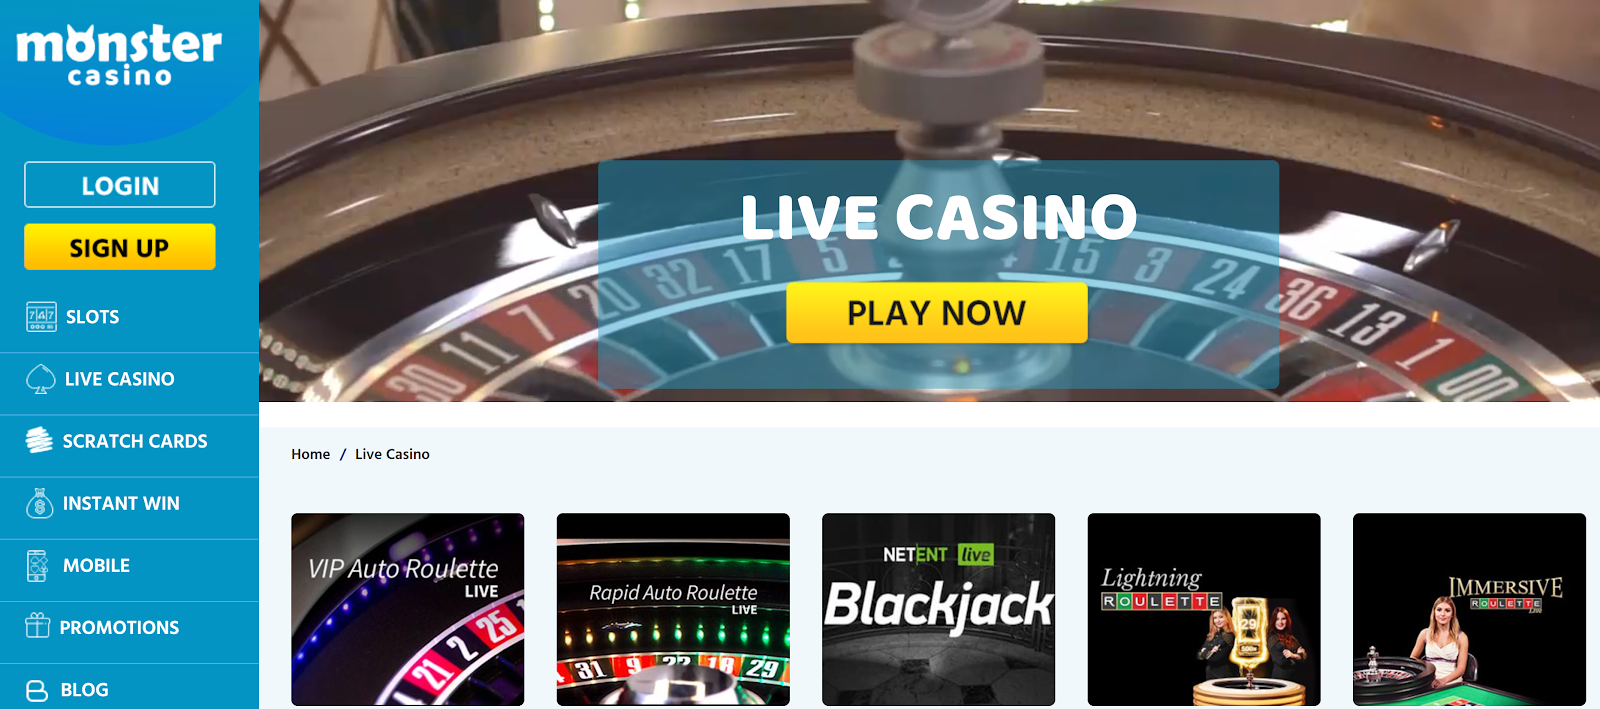 Monster Casino is the best 200% casino bonus site for roulette